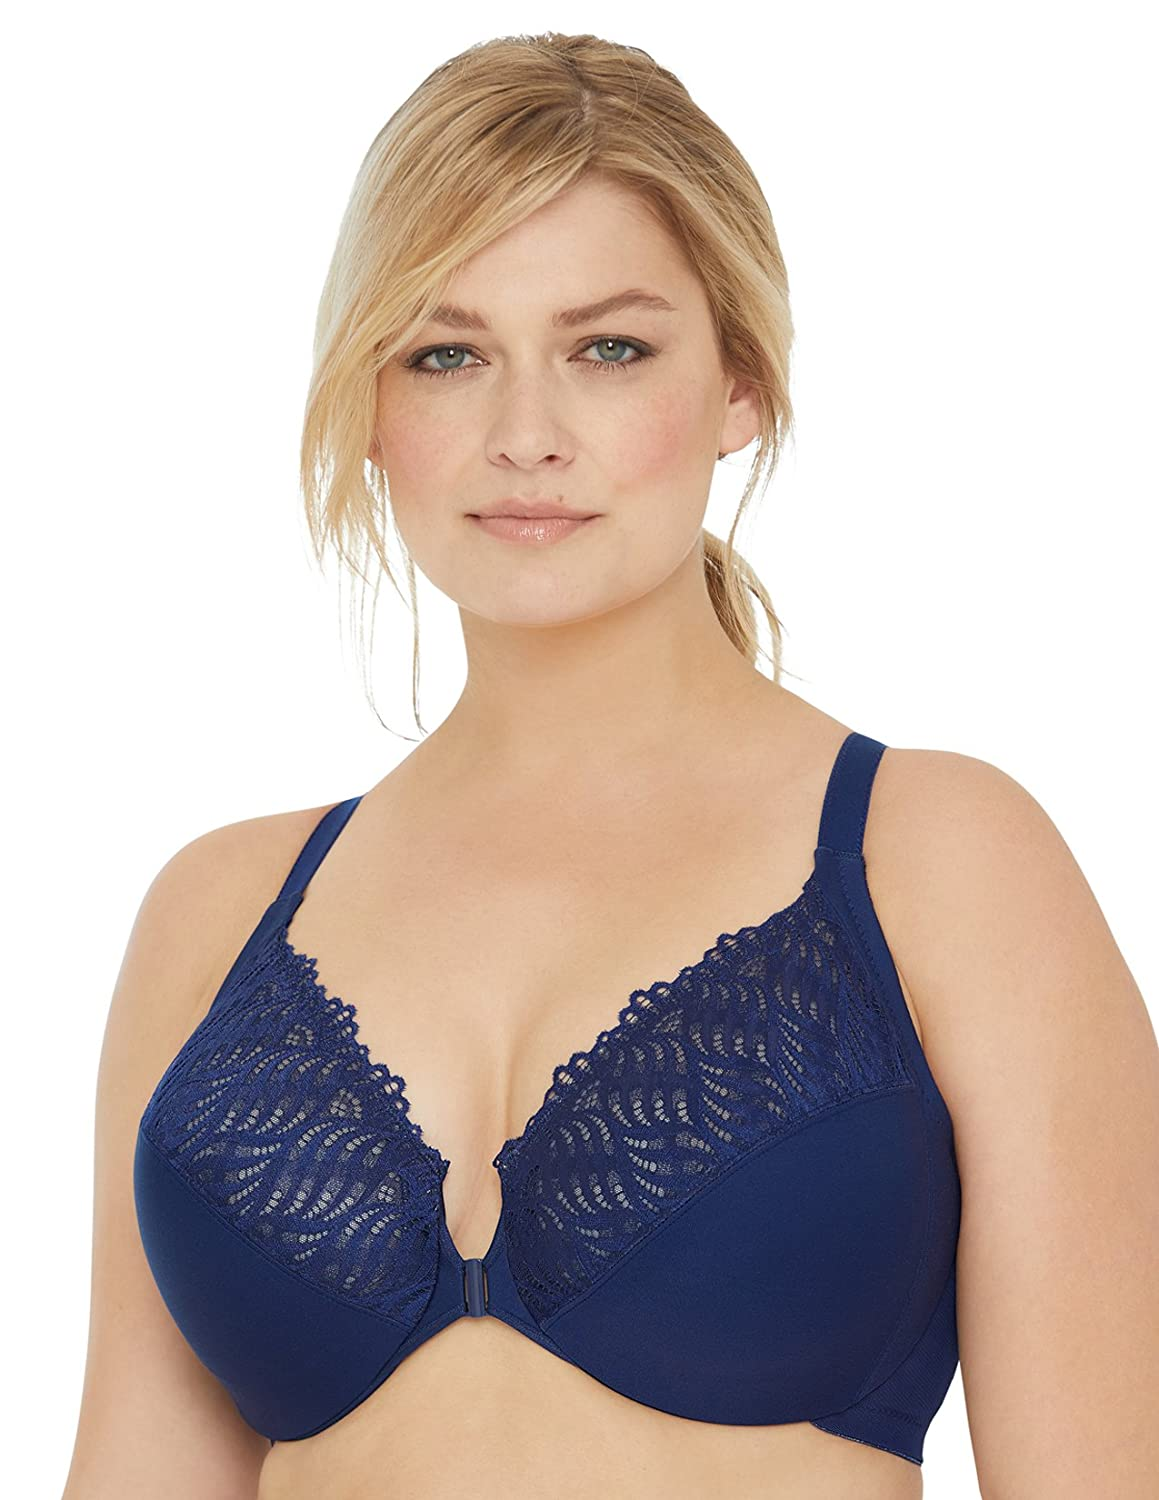 076af328a05 Glamorise Women's Full Figure Front Close Lace T-Back Wonderwire Bra #1246  at Amazon Women's Clothing store: